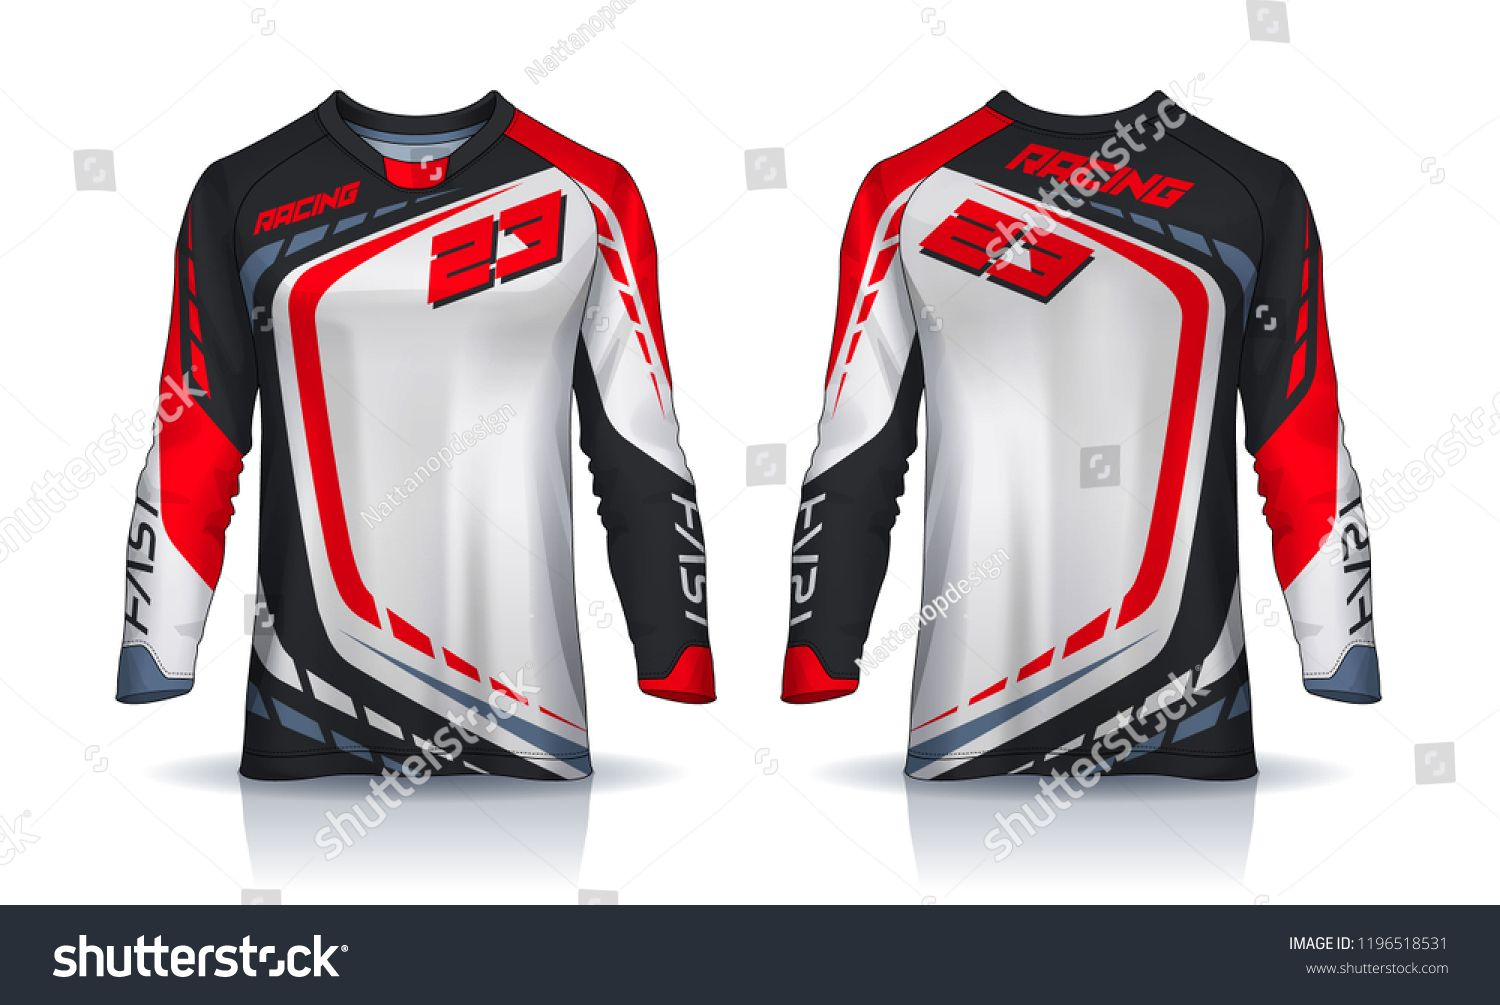 Download T Shirt Sport Design Template Long Sleeve Soccer Jersey Mockup For Football Club Uniform Front And Back View Sports Jersey Design Sports Design Jersey Design